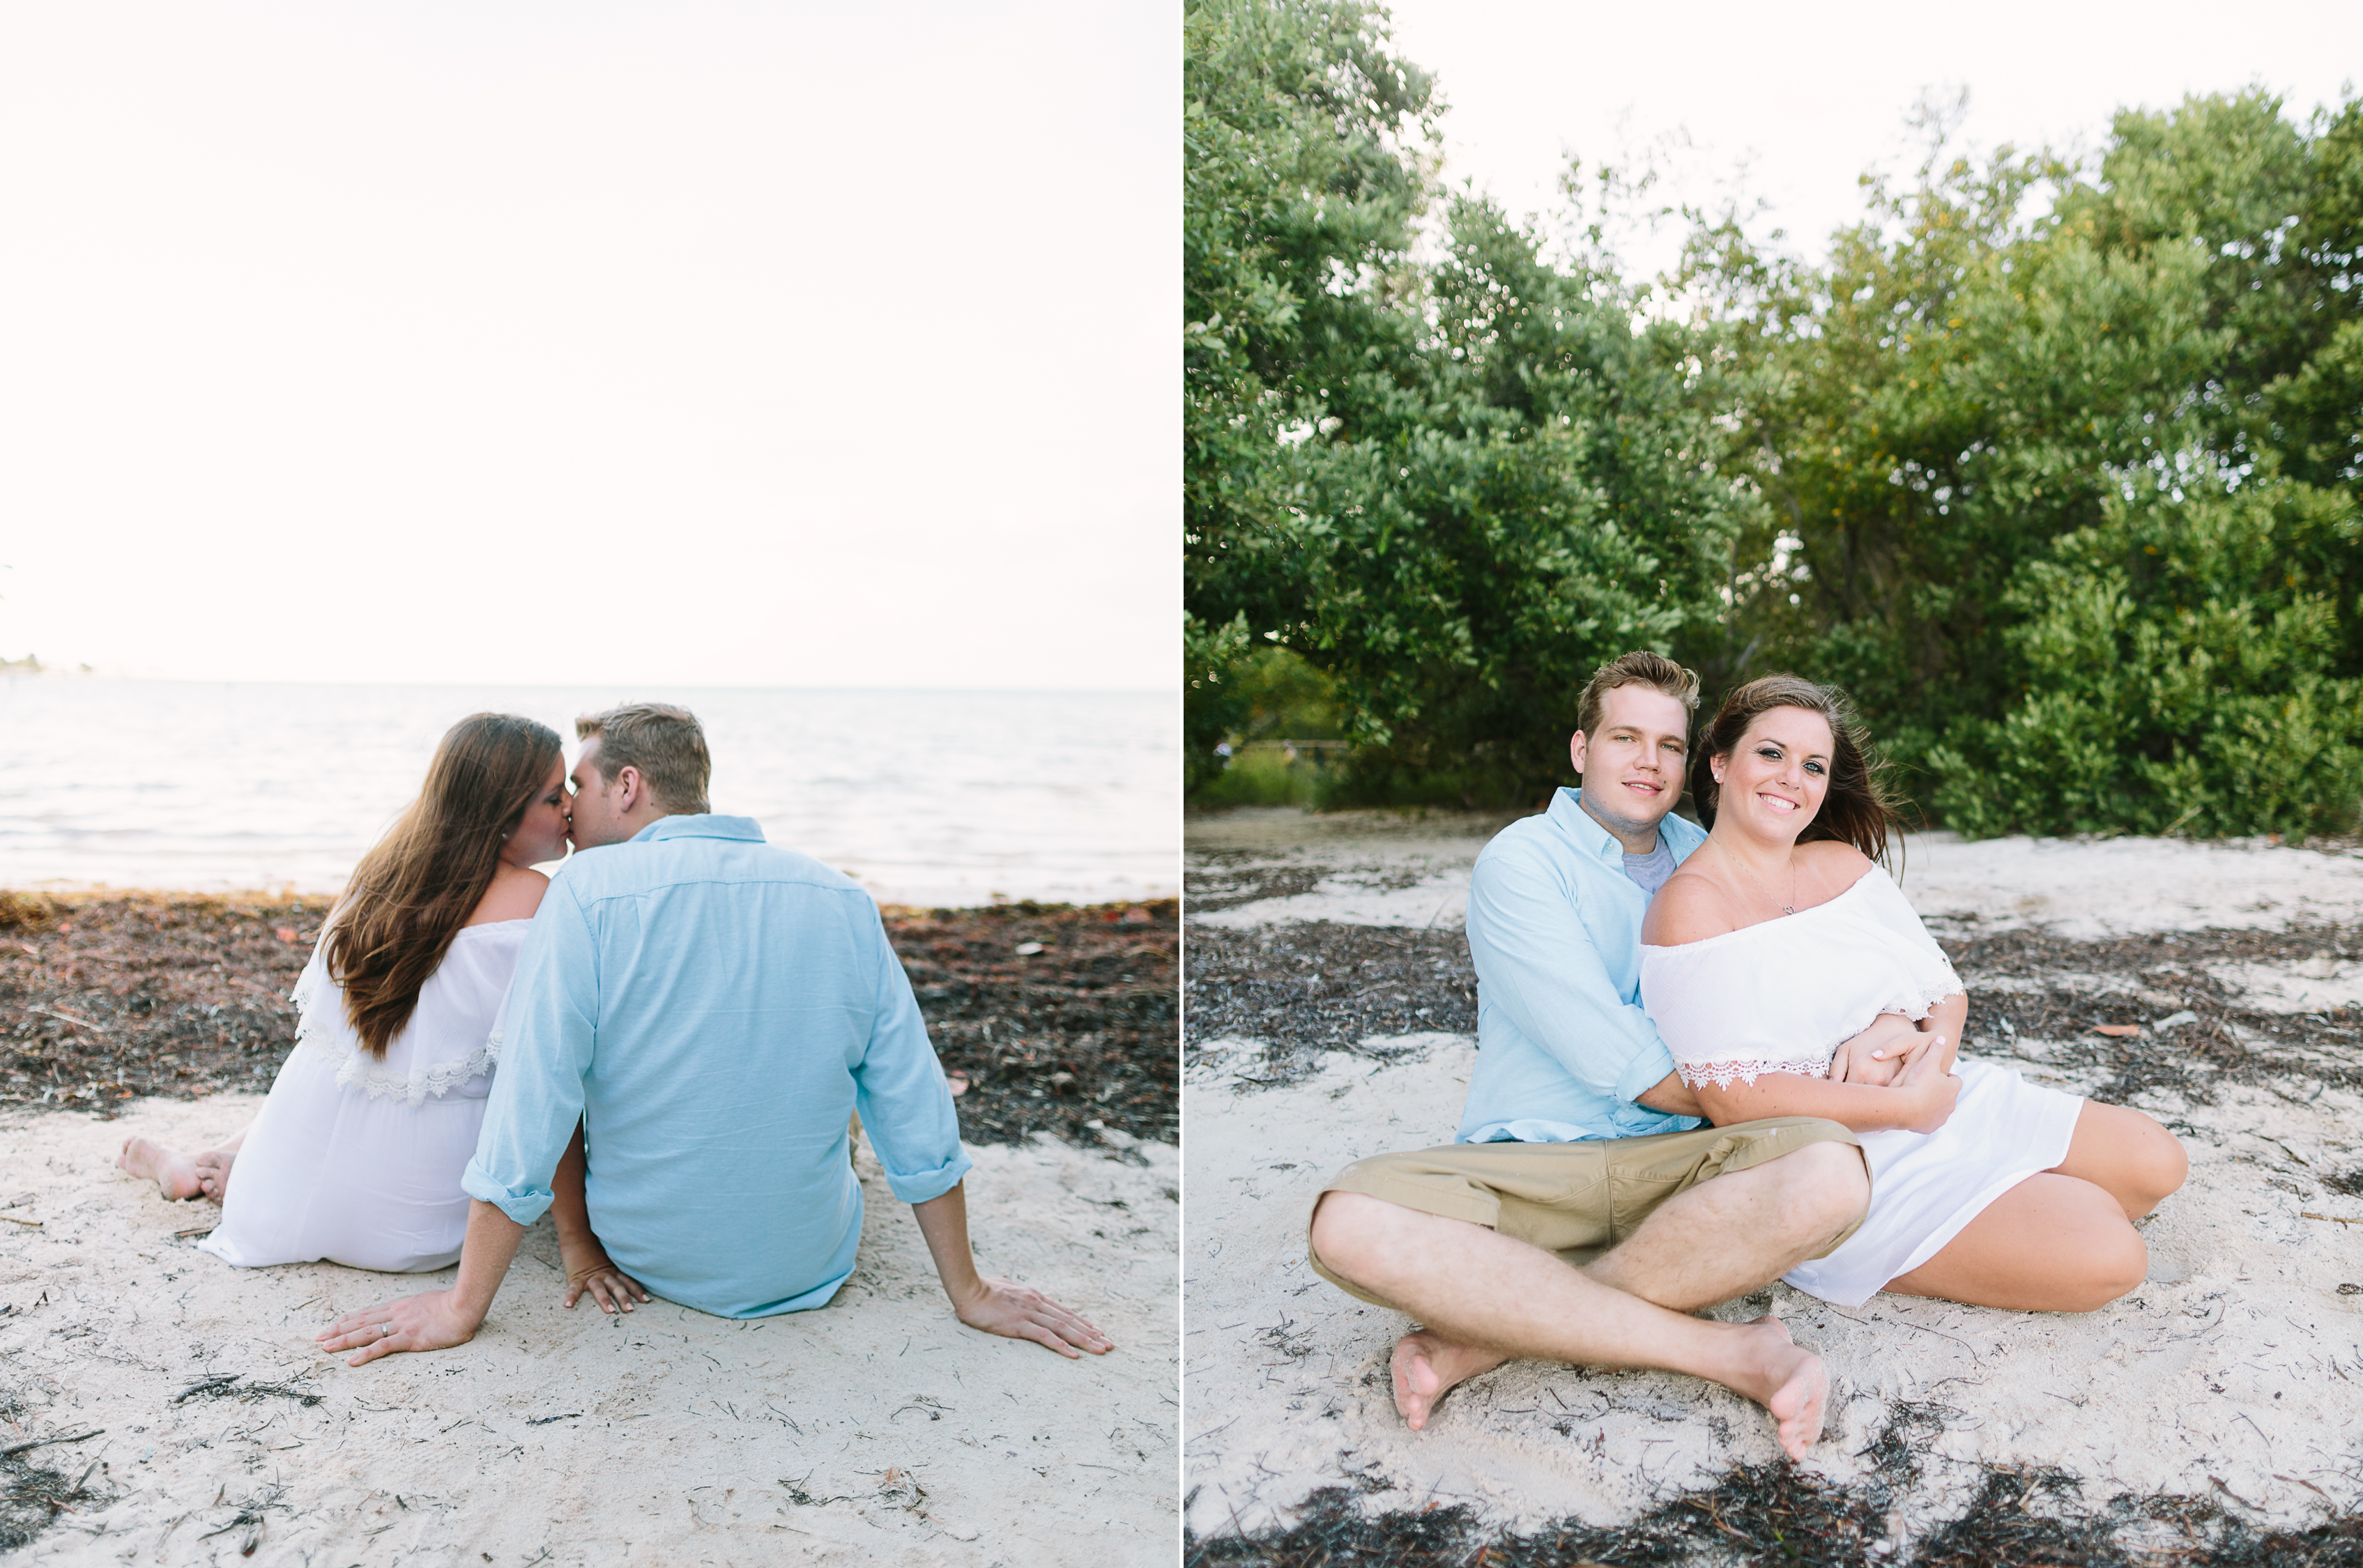 Islamorada Engagement session, Islamorada Florida Weddings, Islamorada photographer, Florida Keys photographers02